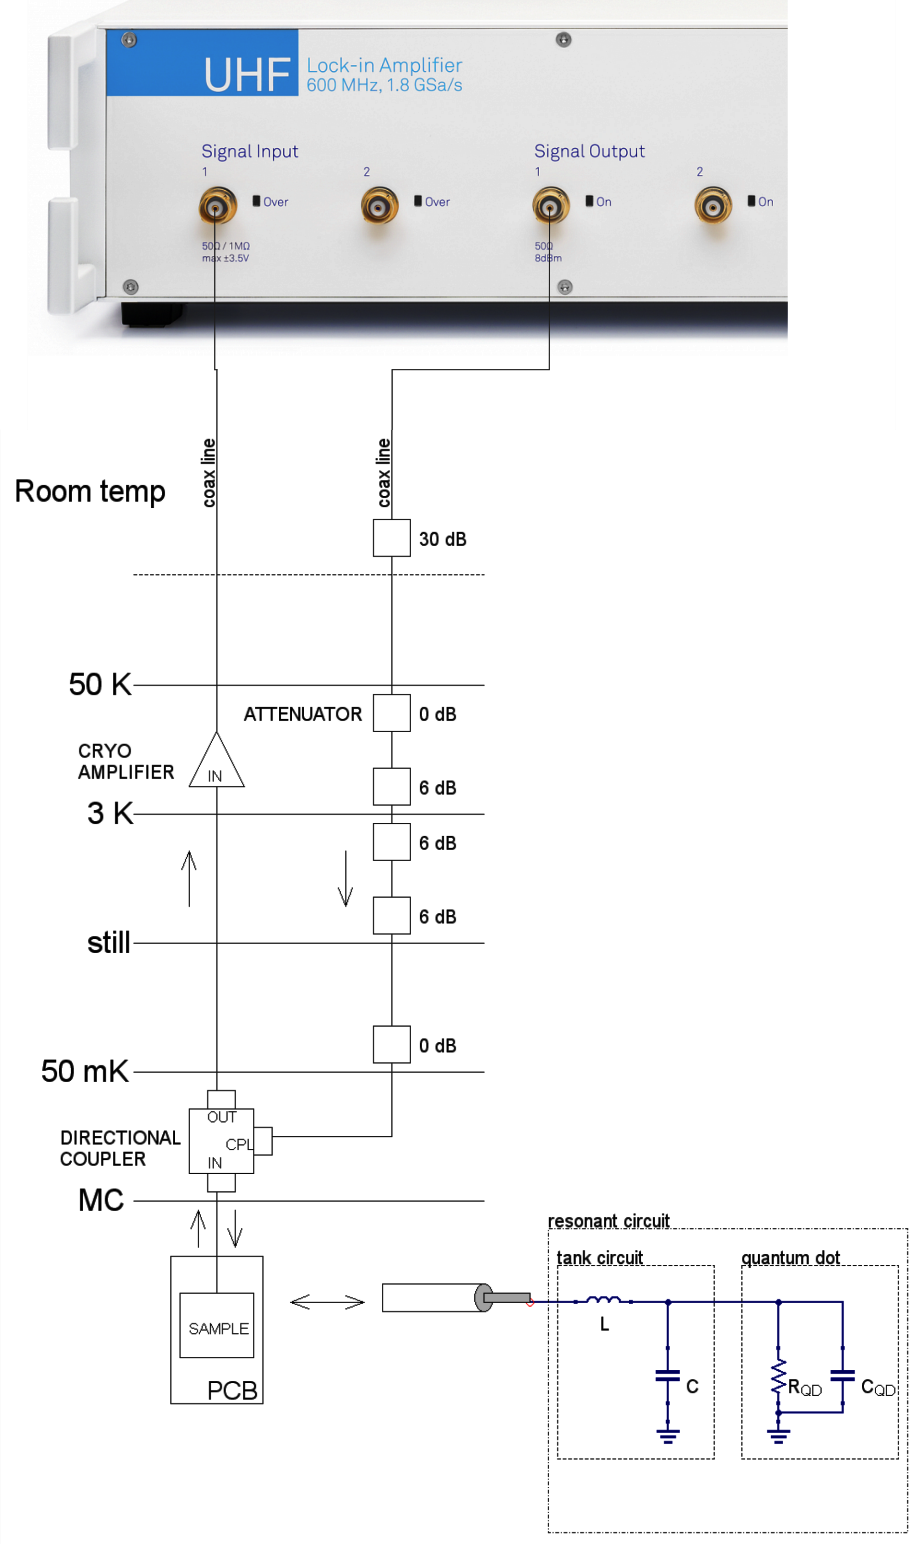 Schematic representation of the RF part of the measurement setup.